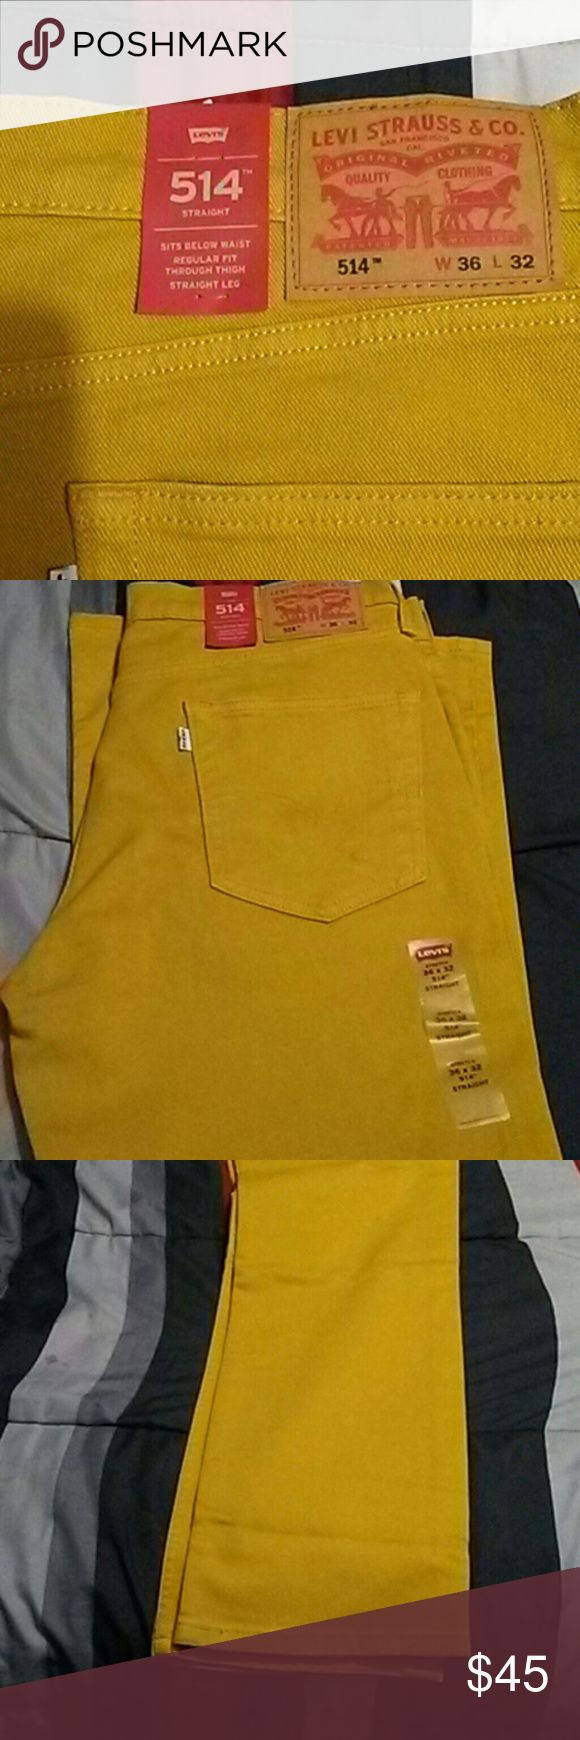 Levis 514 New Jeans Straight